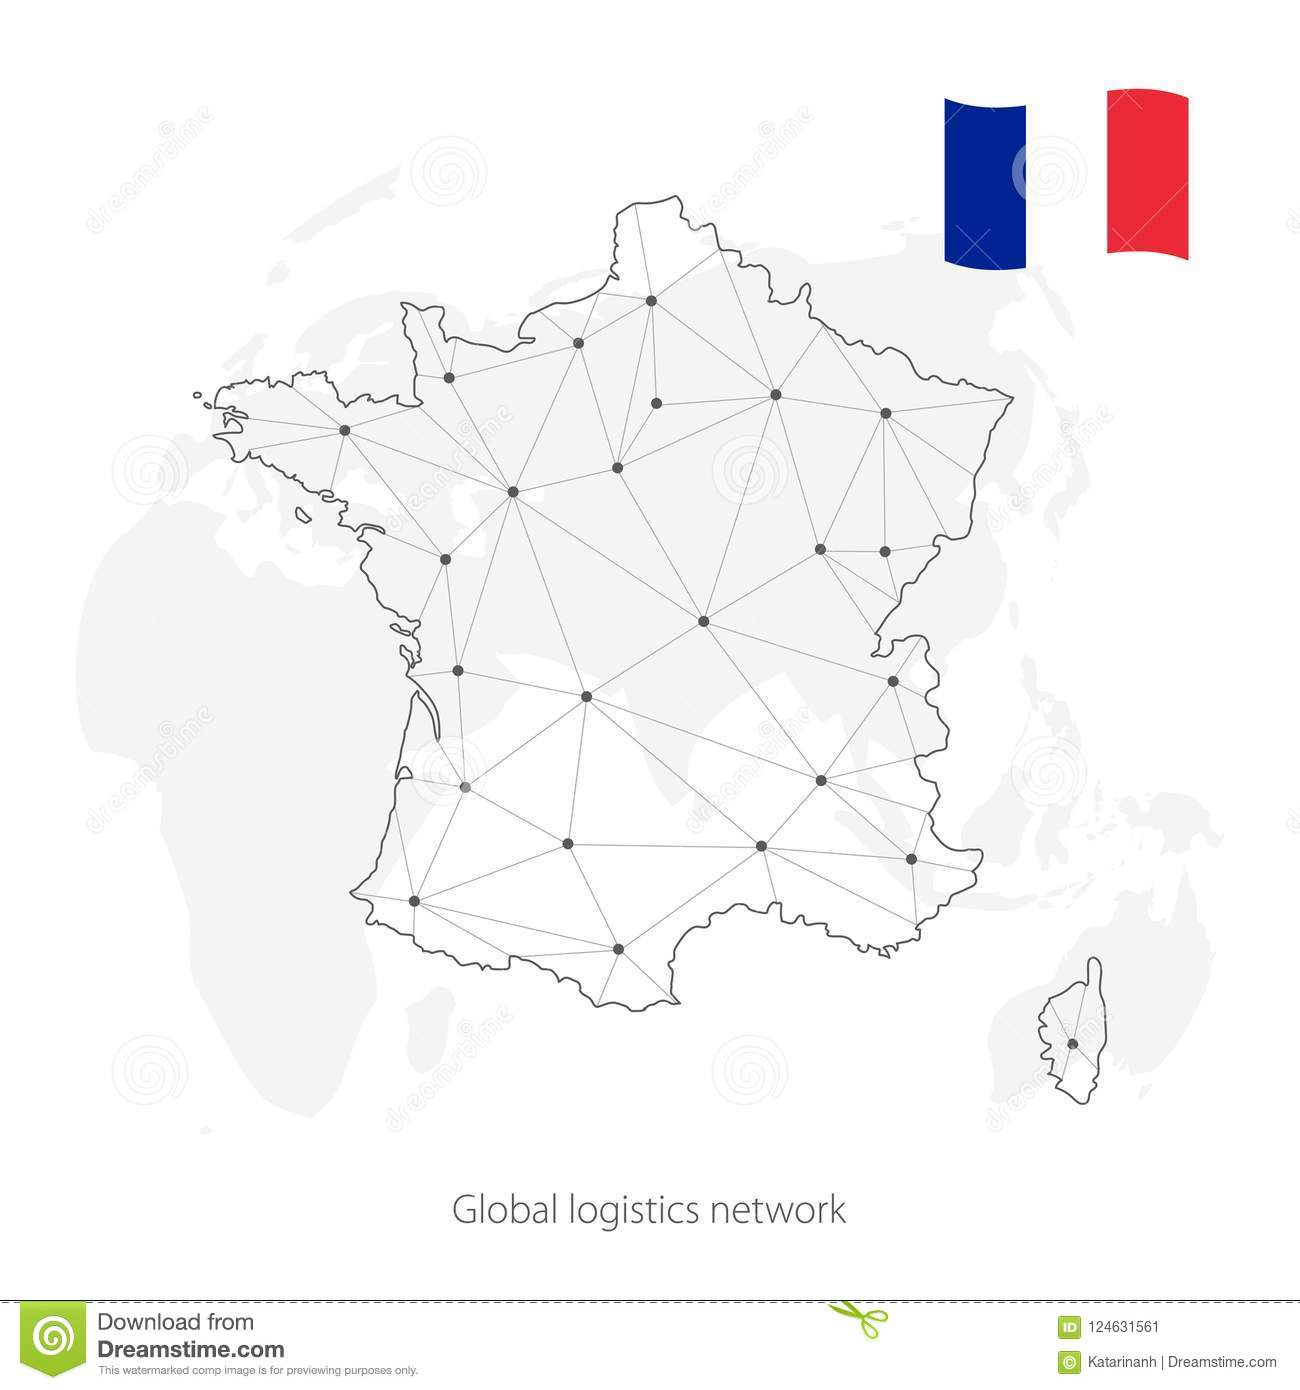 Map Of France In The World.Global Logistics Network Concept Communications Network Map France